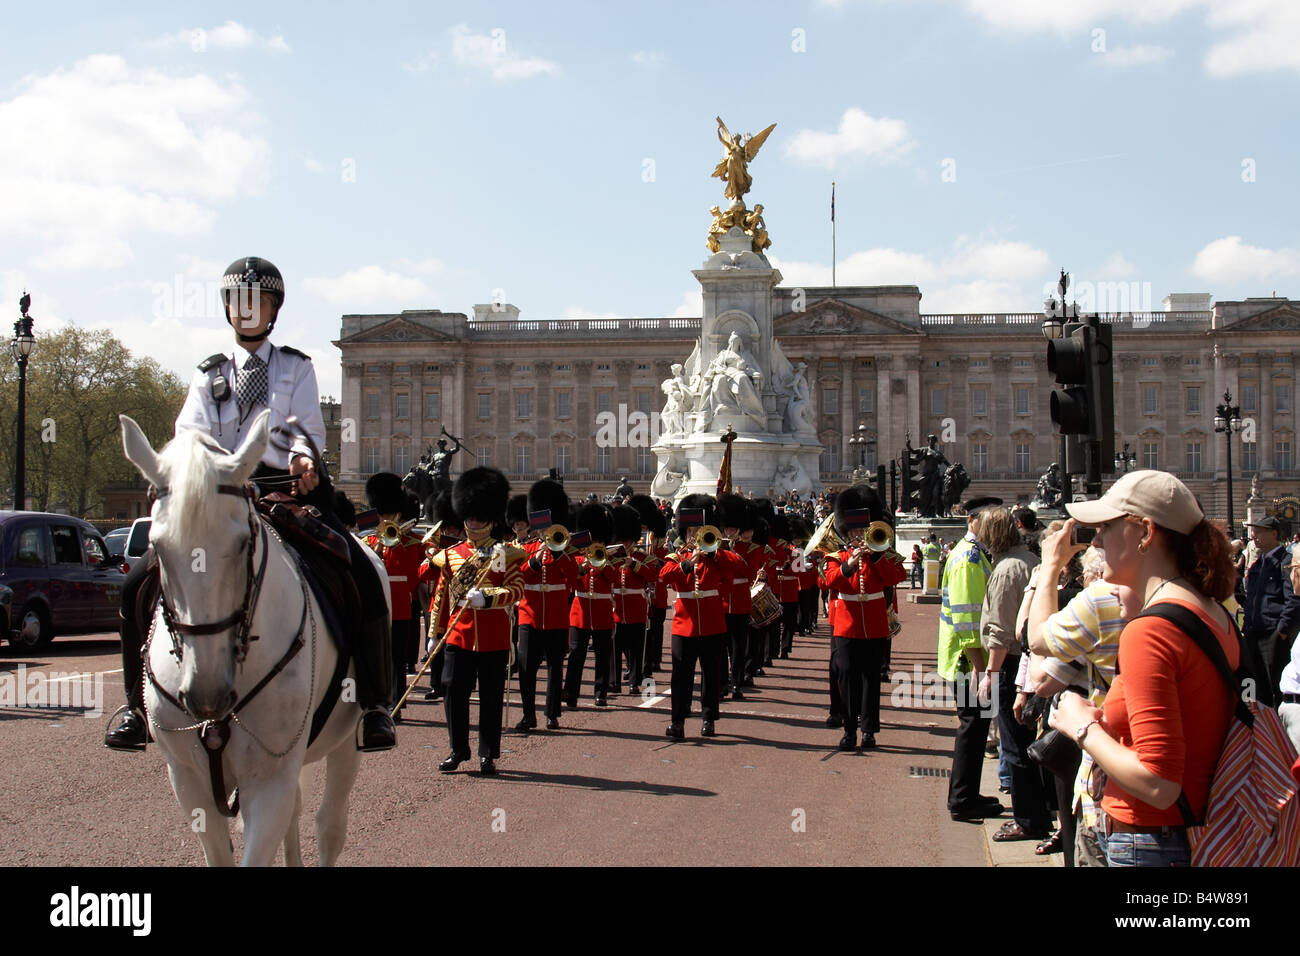 The governor general s foot guards - Mounted Police Officer Foot Guard S Military Band Changing The Guard With Victoria Memorial Buckingham Palace